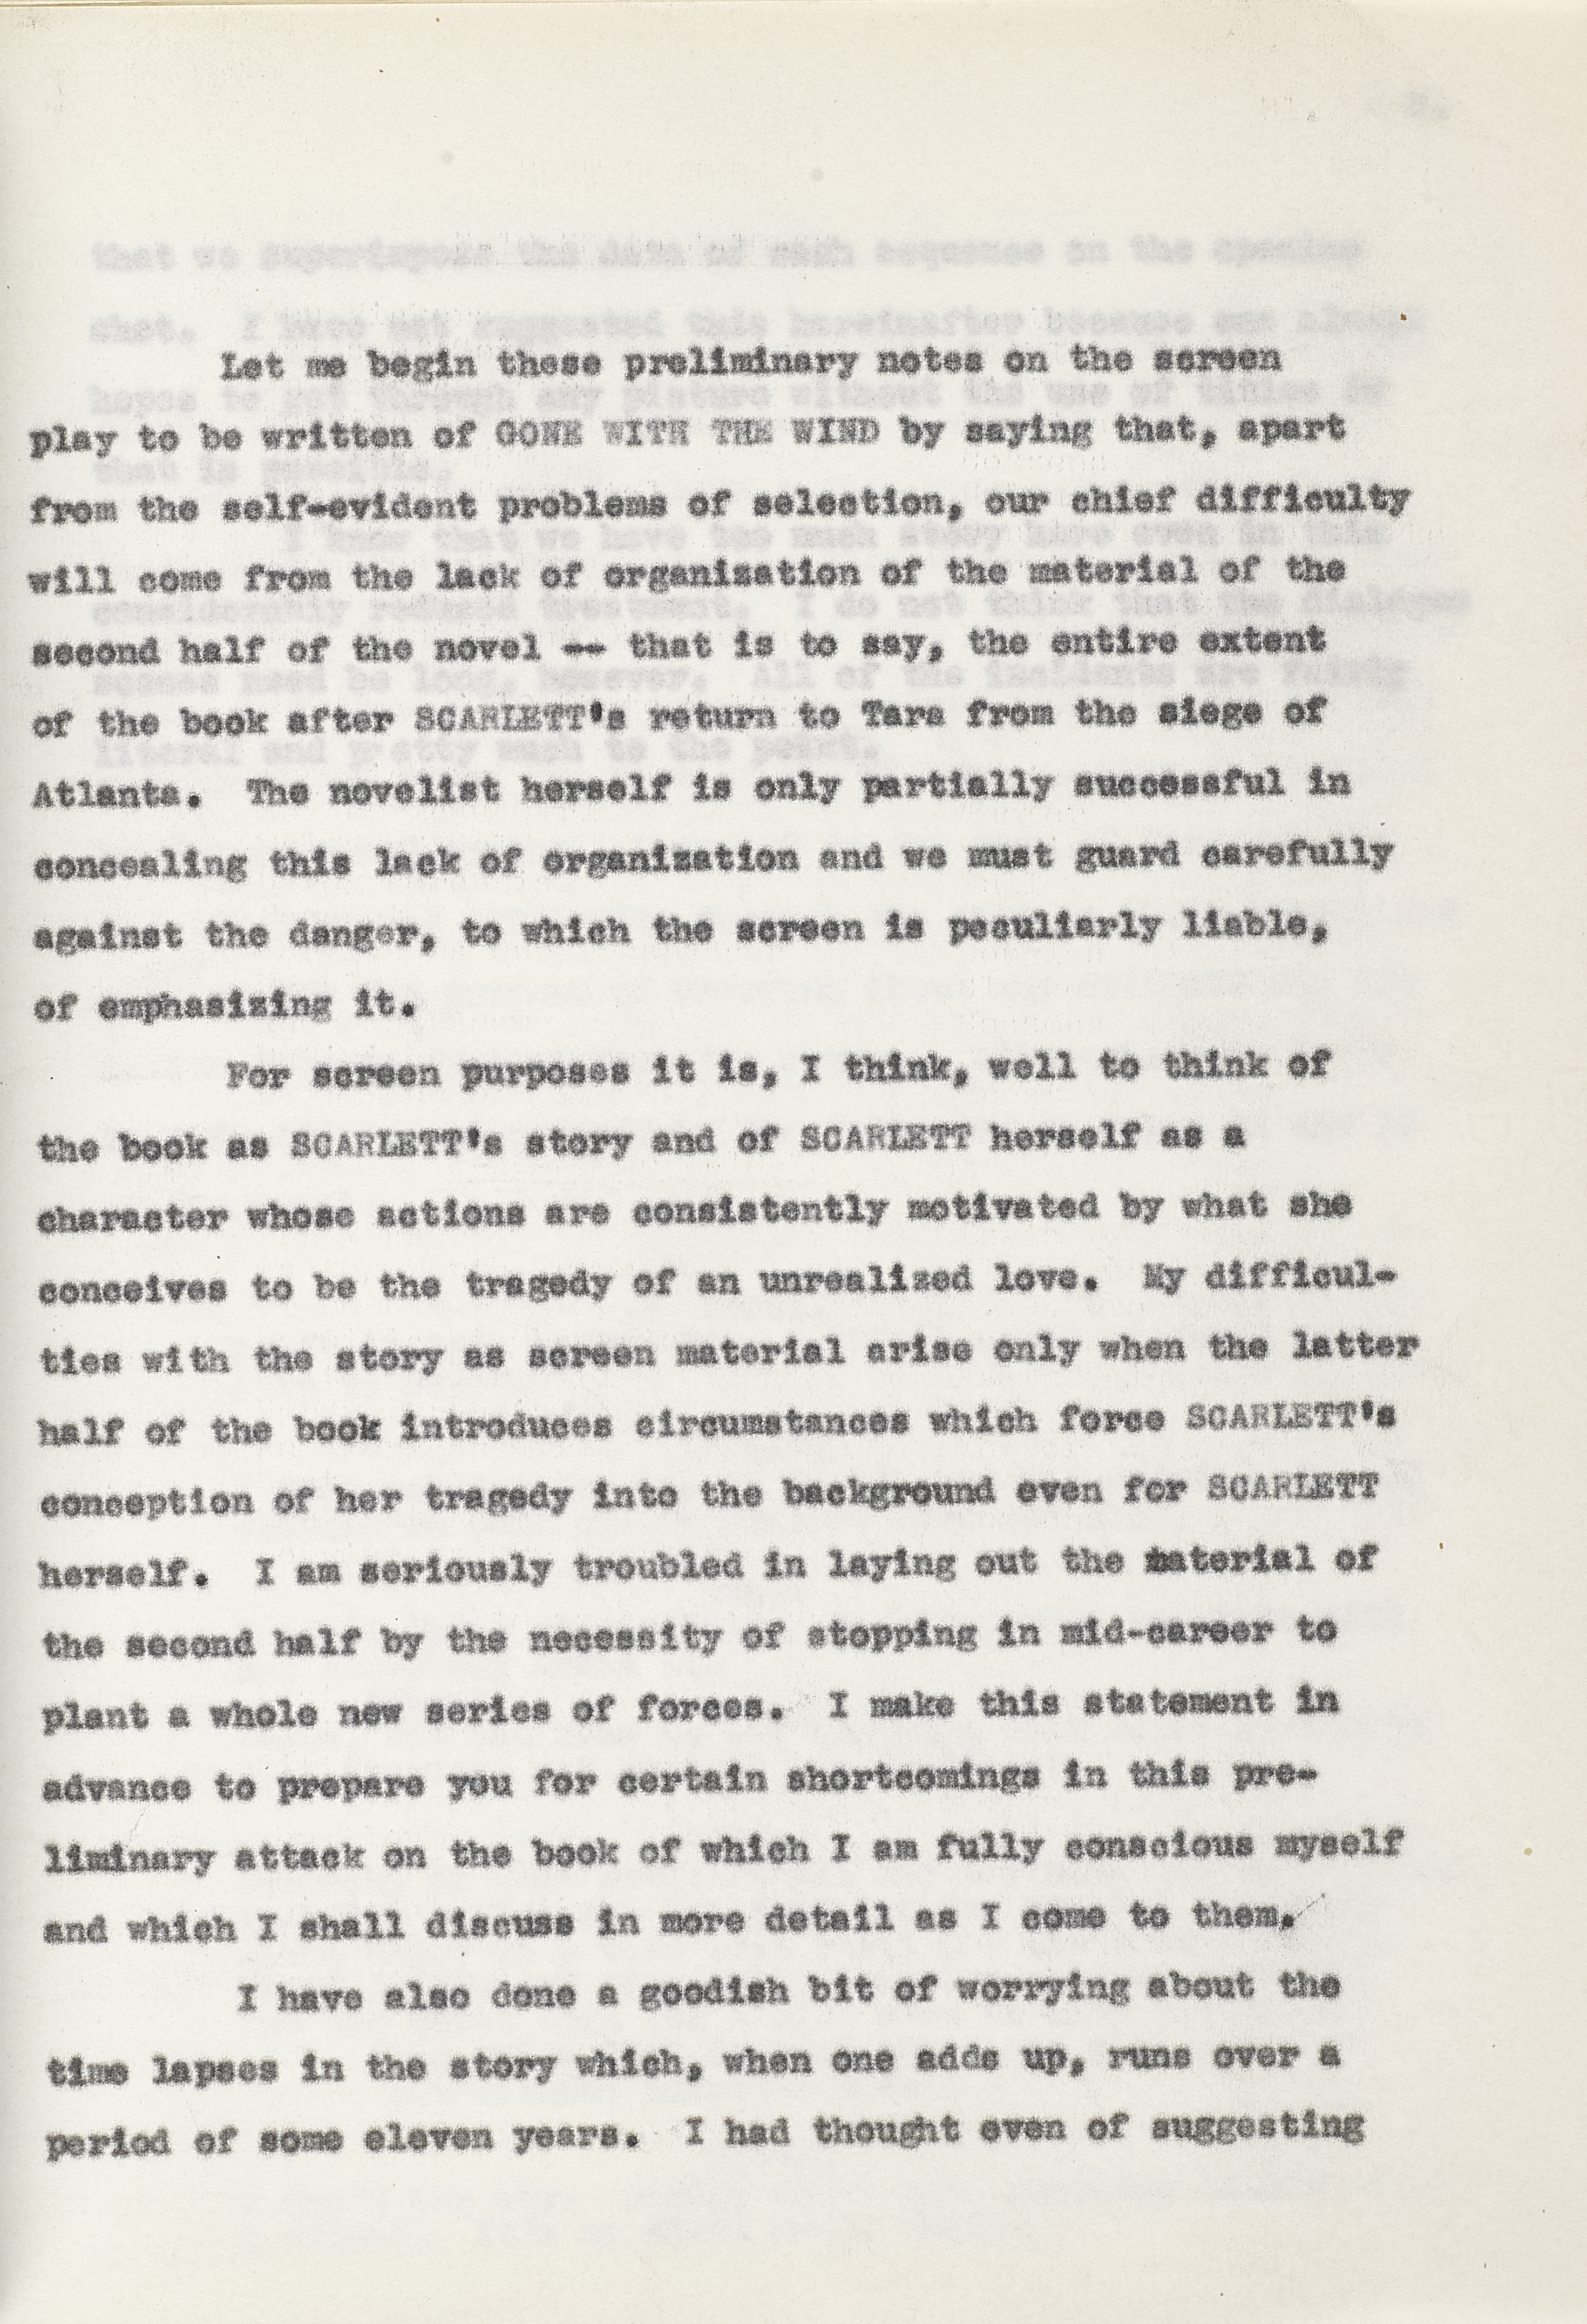 Lot 1033 - A Gone With the Wind preliminary story treatment by Sidney Howard